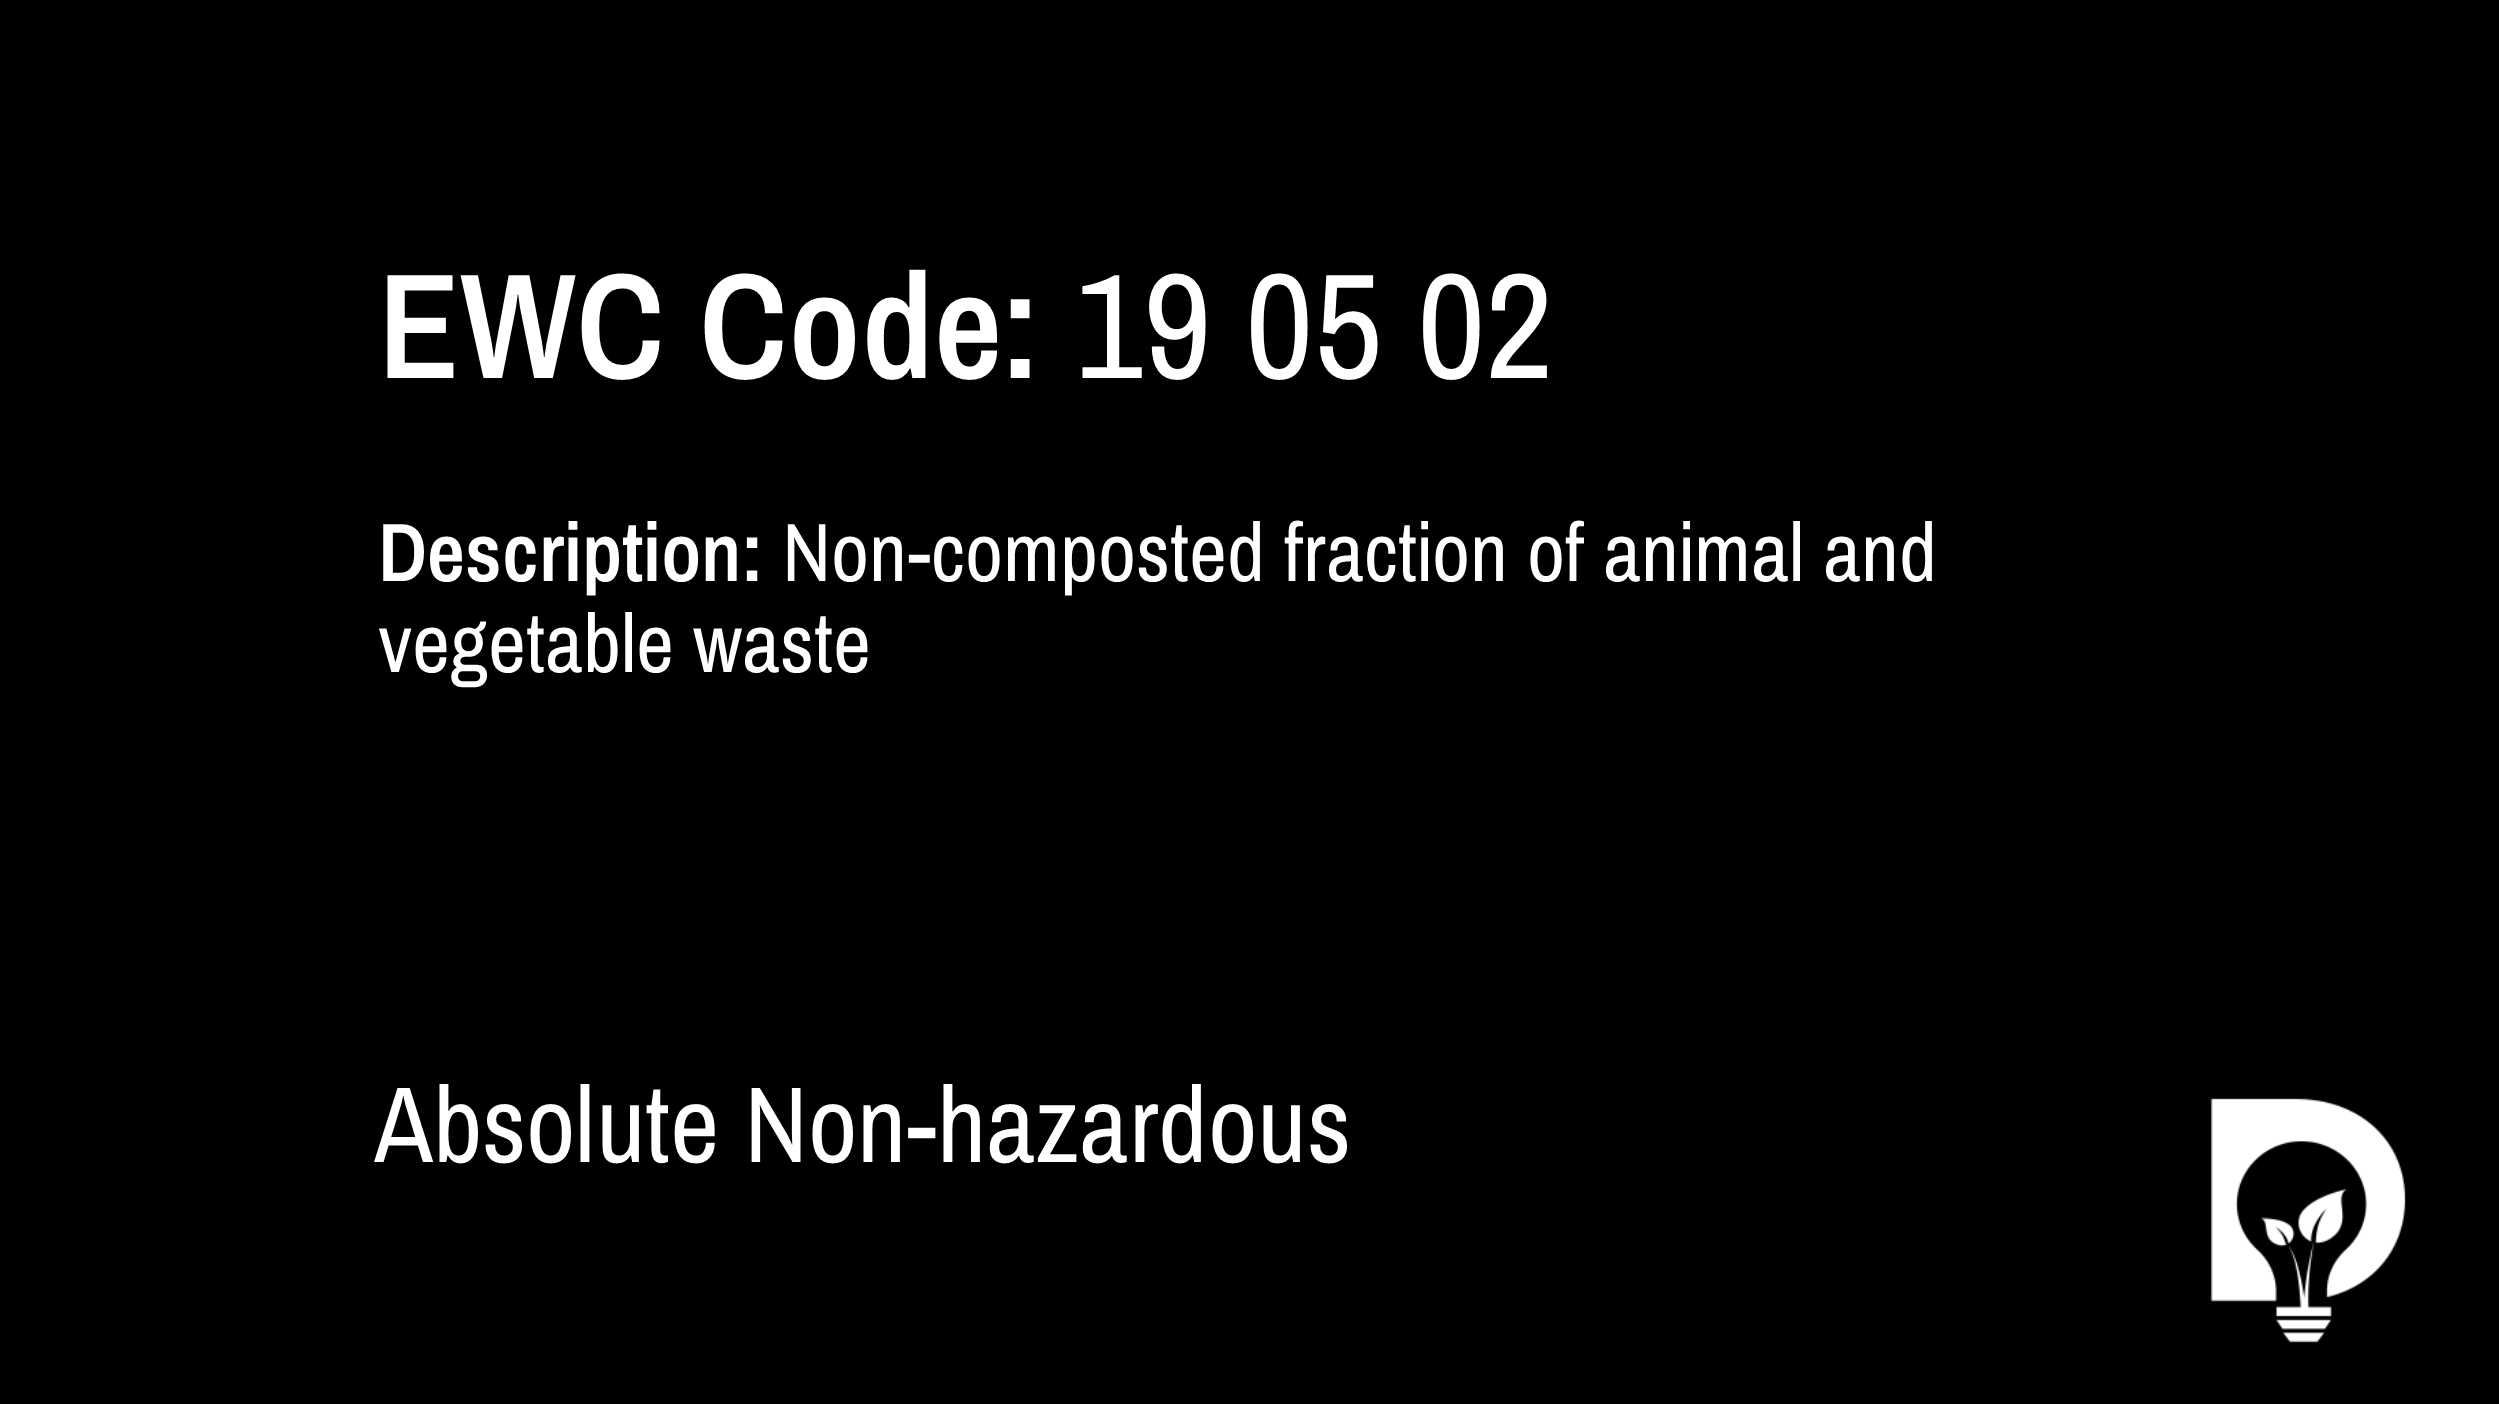 EWC Code: 19 05 02 - non-composted fraction of animal and vegetable waste. Type: Absolute Non-hazardous. Image by Dsposal